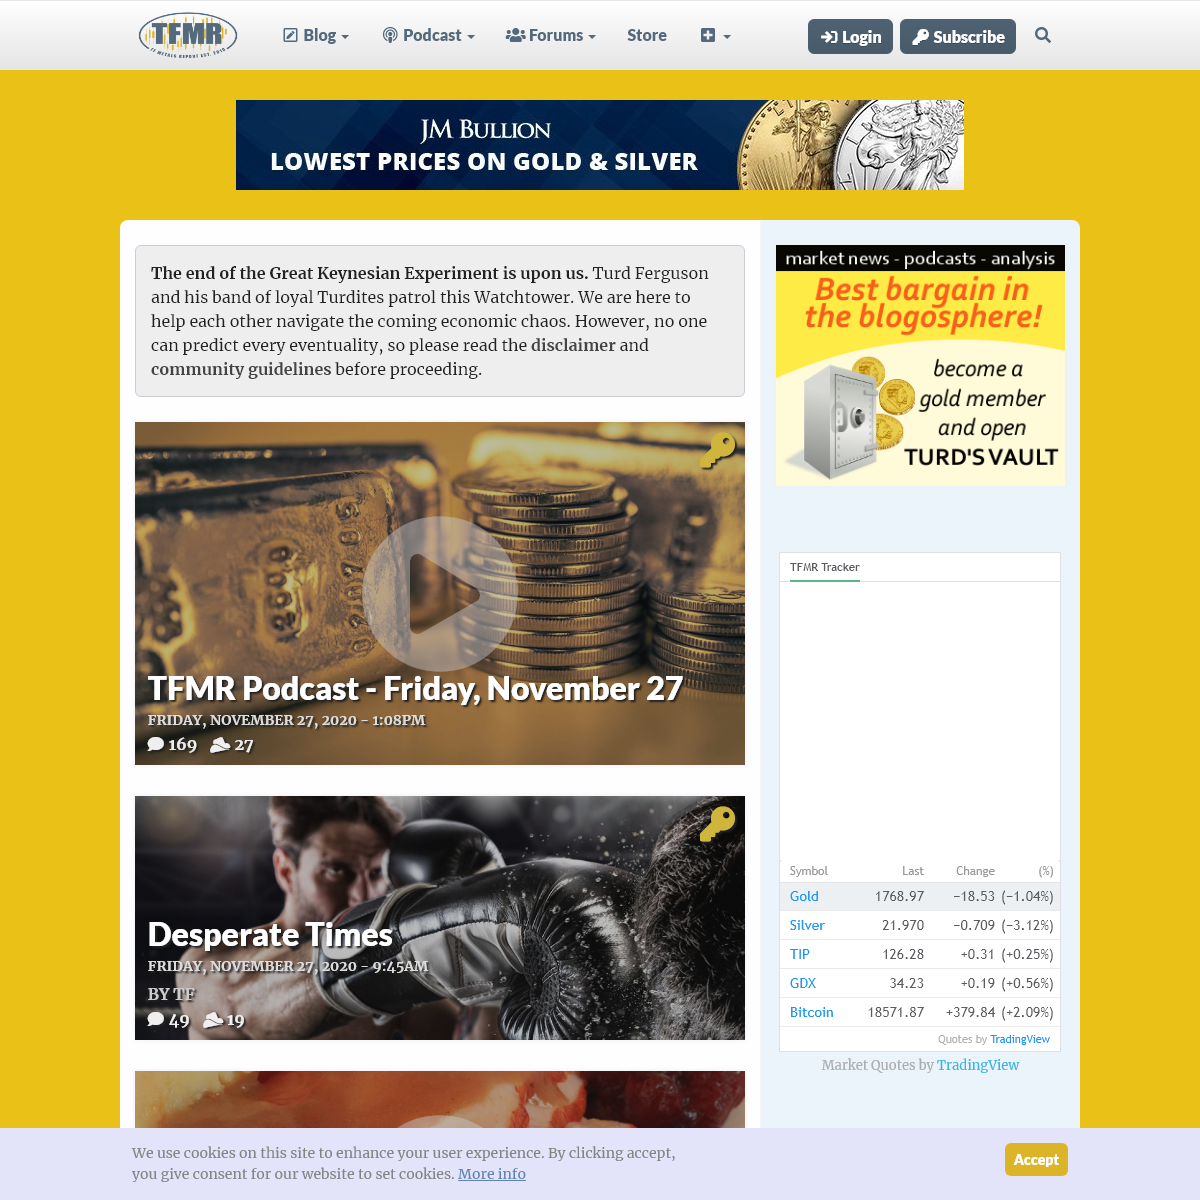 TF Metals Report - Gold, silver, currency and commodities coverage.